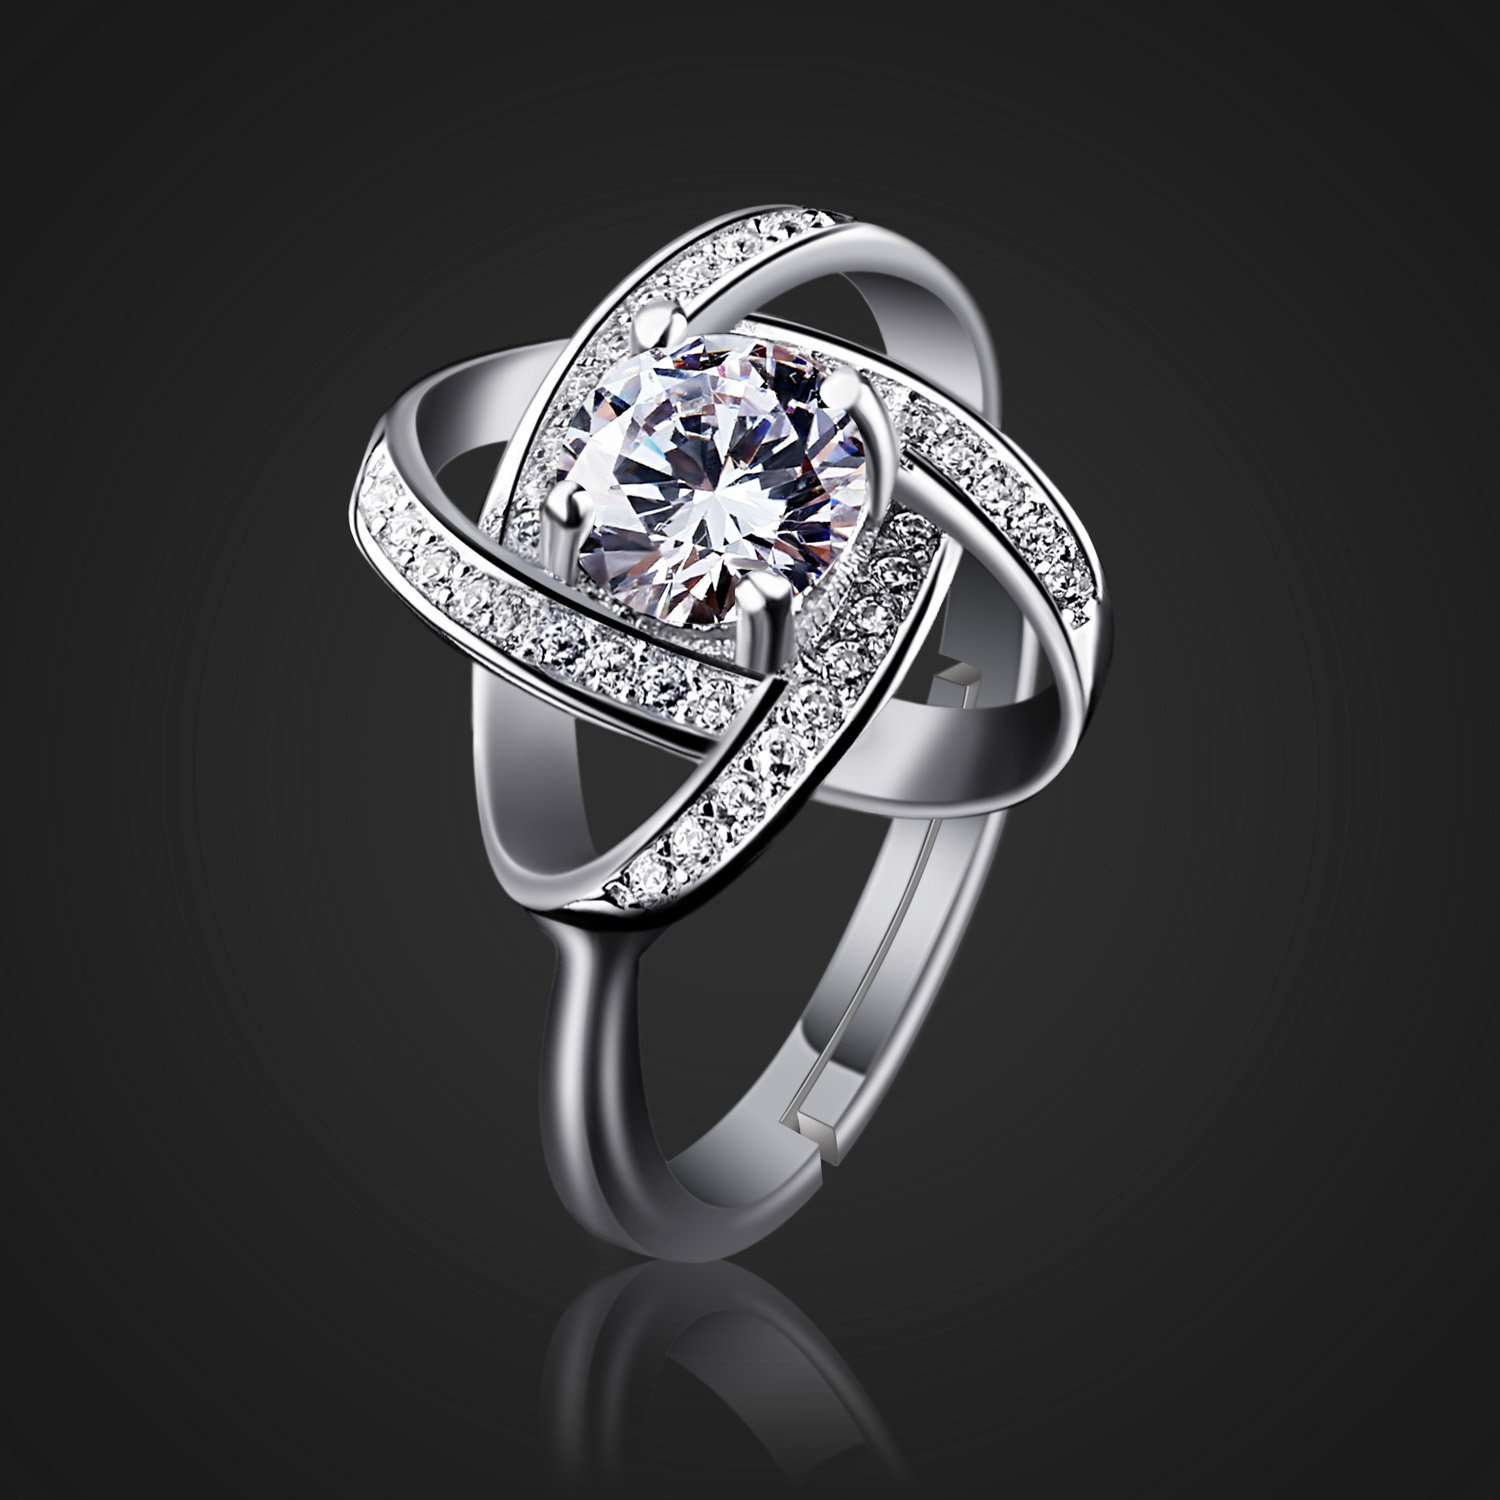 B.Catcher Women's Ring Adjustable 925 Sterling Silver Cubic Zirconia Valentine's Gift for Her by B.Catcher (Image #3)